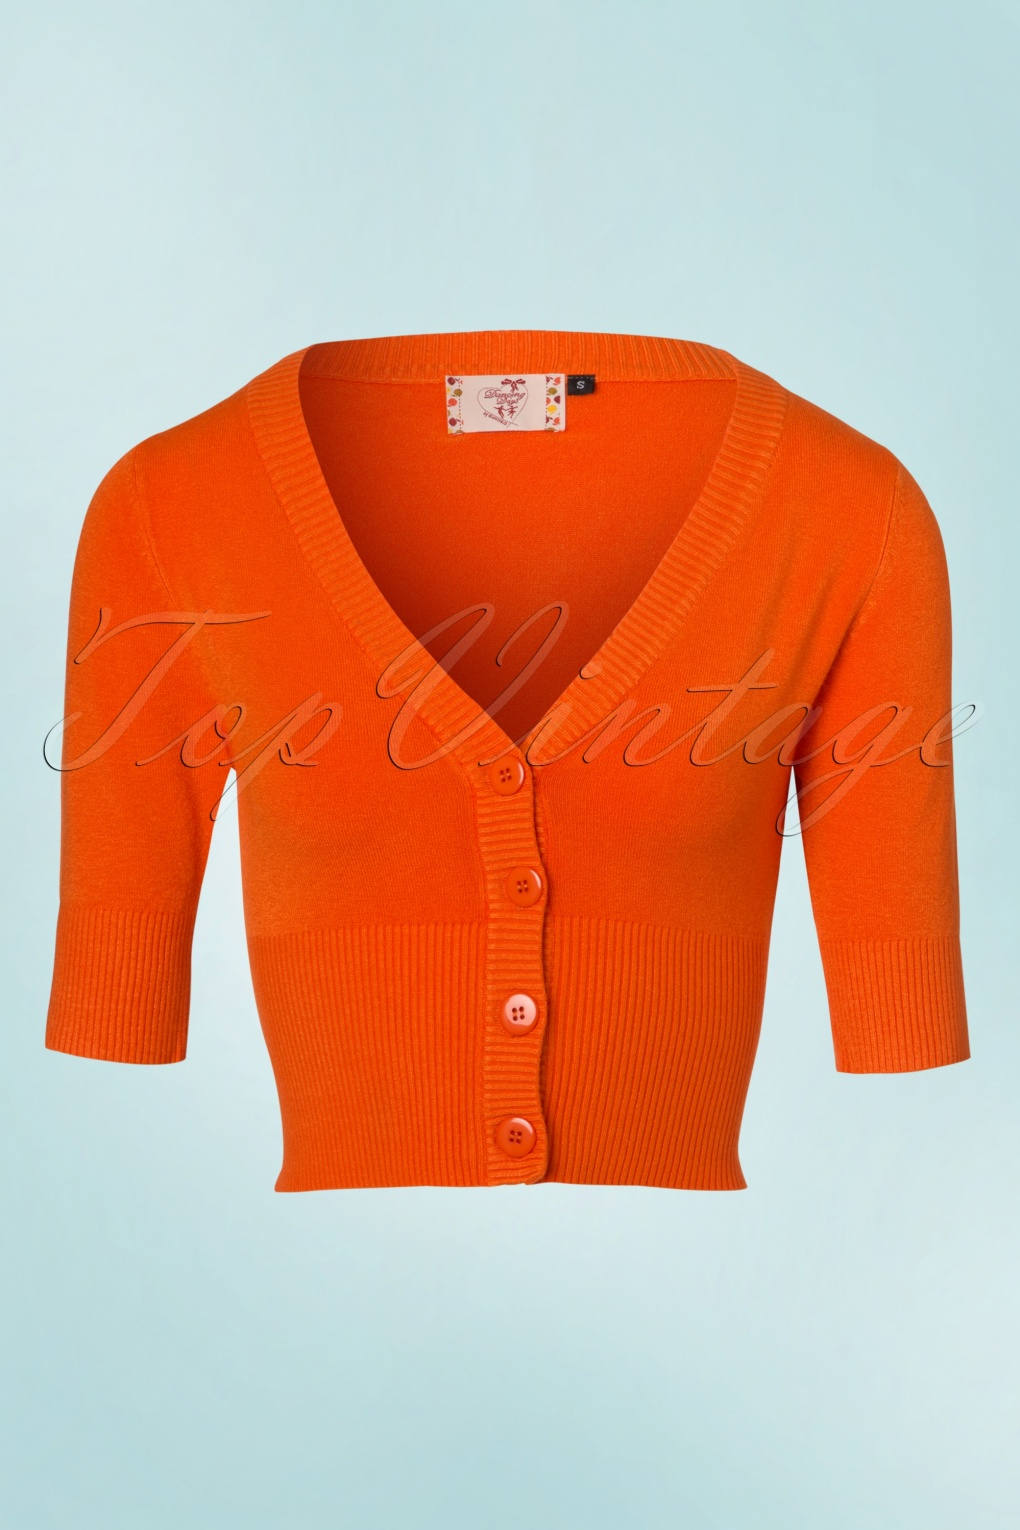 Küchengrundriss 50s cardigan in orange